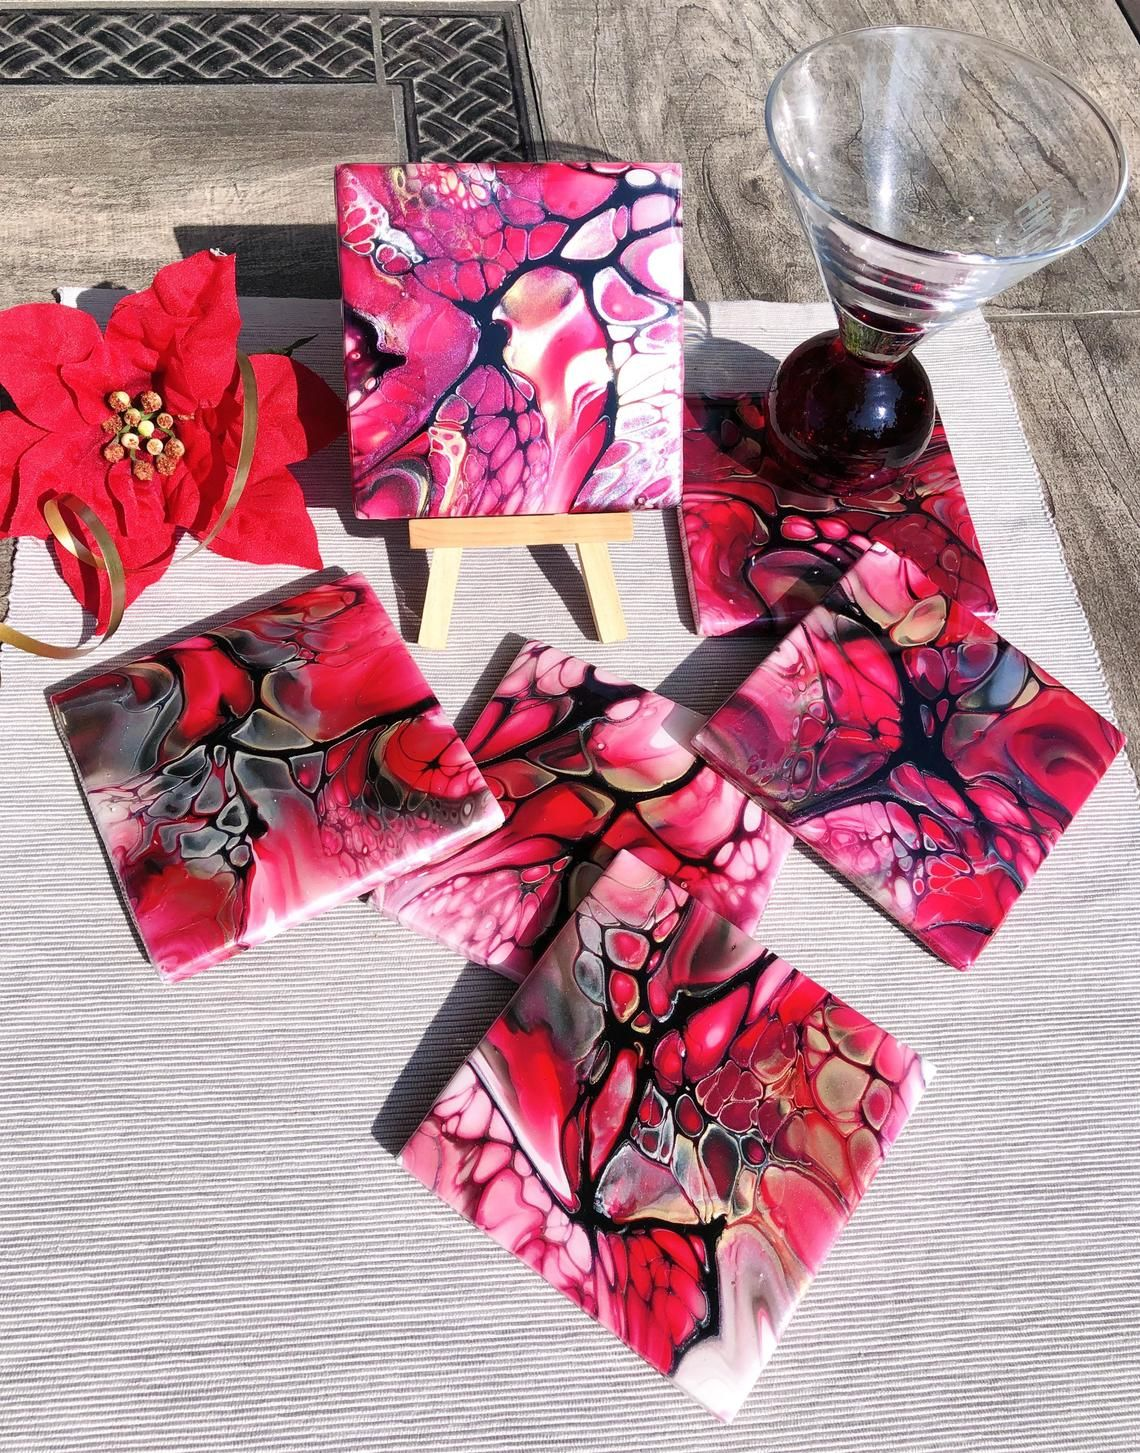 Red Gold Ceramic Coasters Set Of 6 Fluid Art Coasters Hostess Gift Christmas Gift For Her Functional Art Holiday Table Decor In 2020 Ceramic Coasters Gold Ceramic Holiday Table Decorations